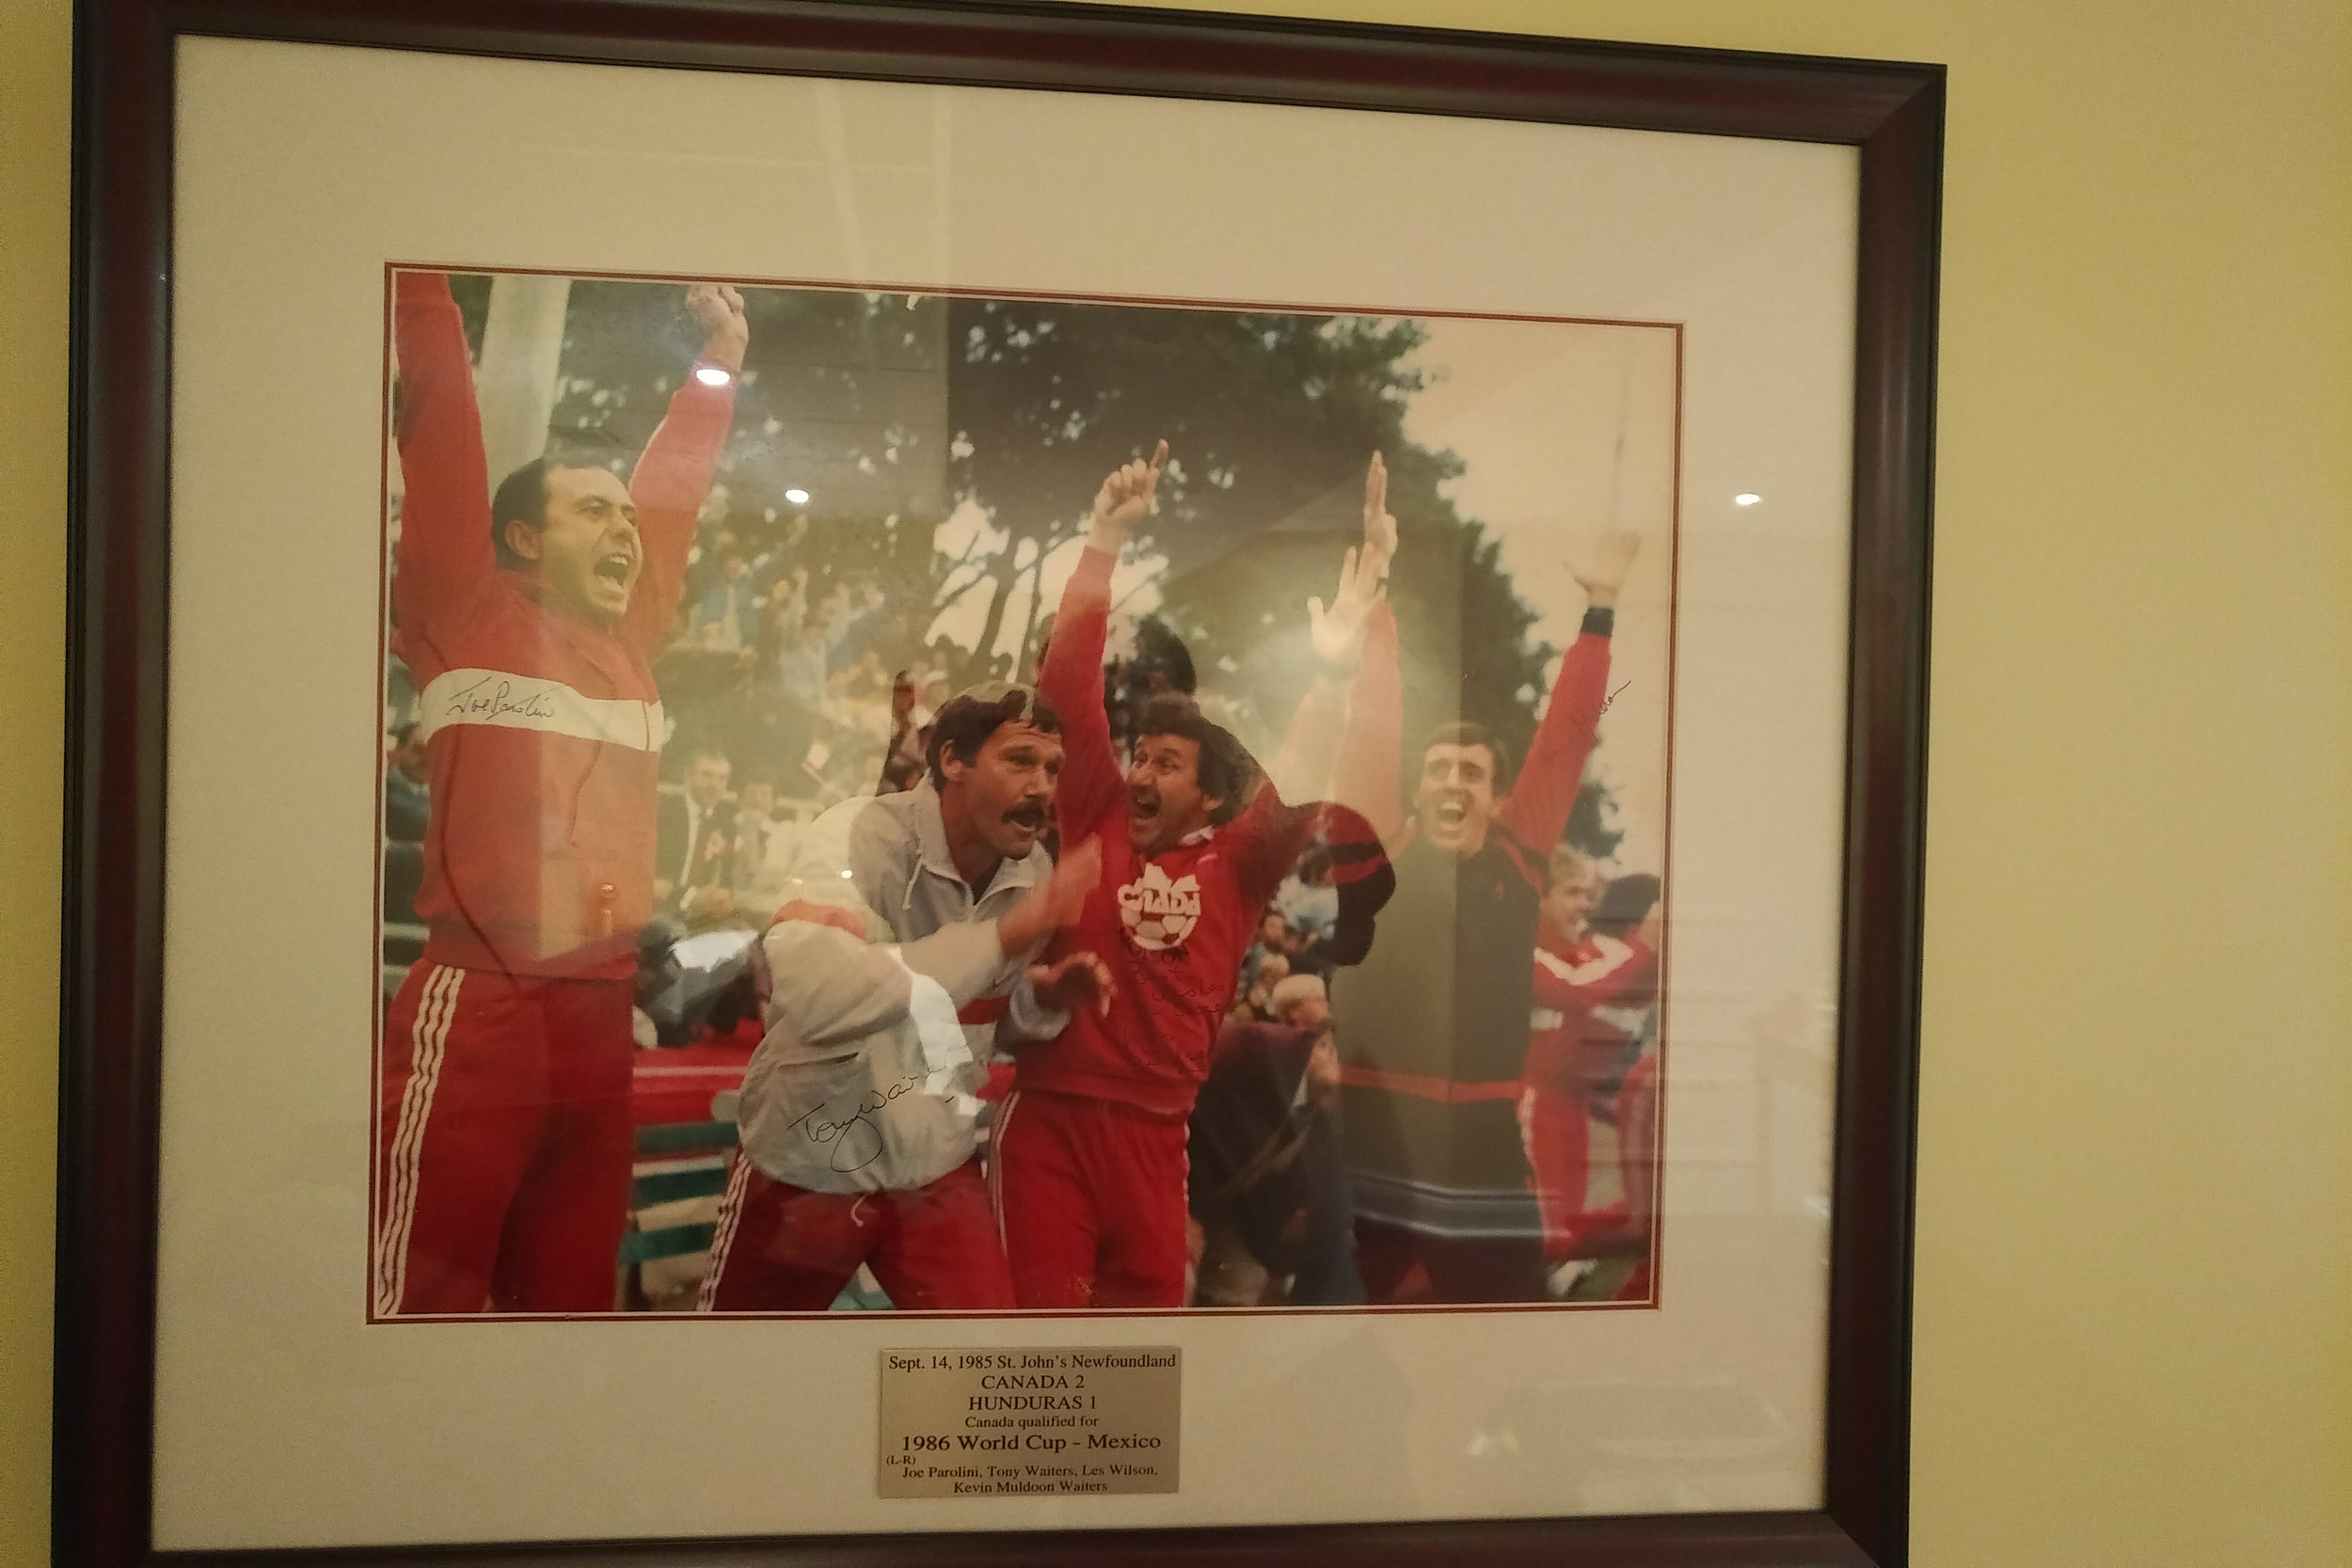 Infamous Photo of when whistle blew in St. John's Newfoundland as Canada beat Honduras 2-1 to qualify for the 1986 World Cup in Mexico. (Left to right) Joe Parolini, Tony Waiters, Les Wilson, & Kevin Muldoon